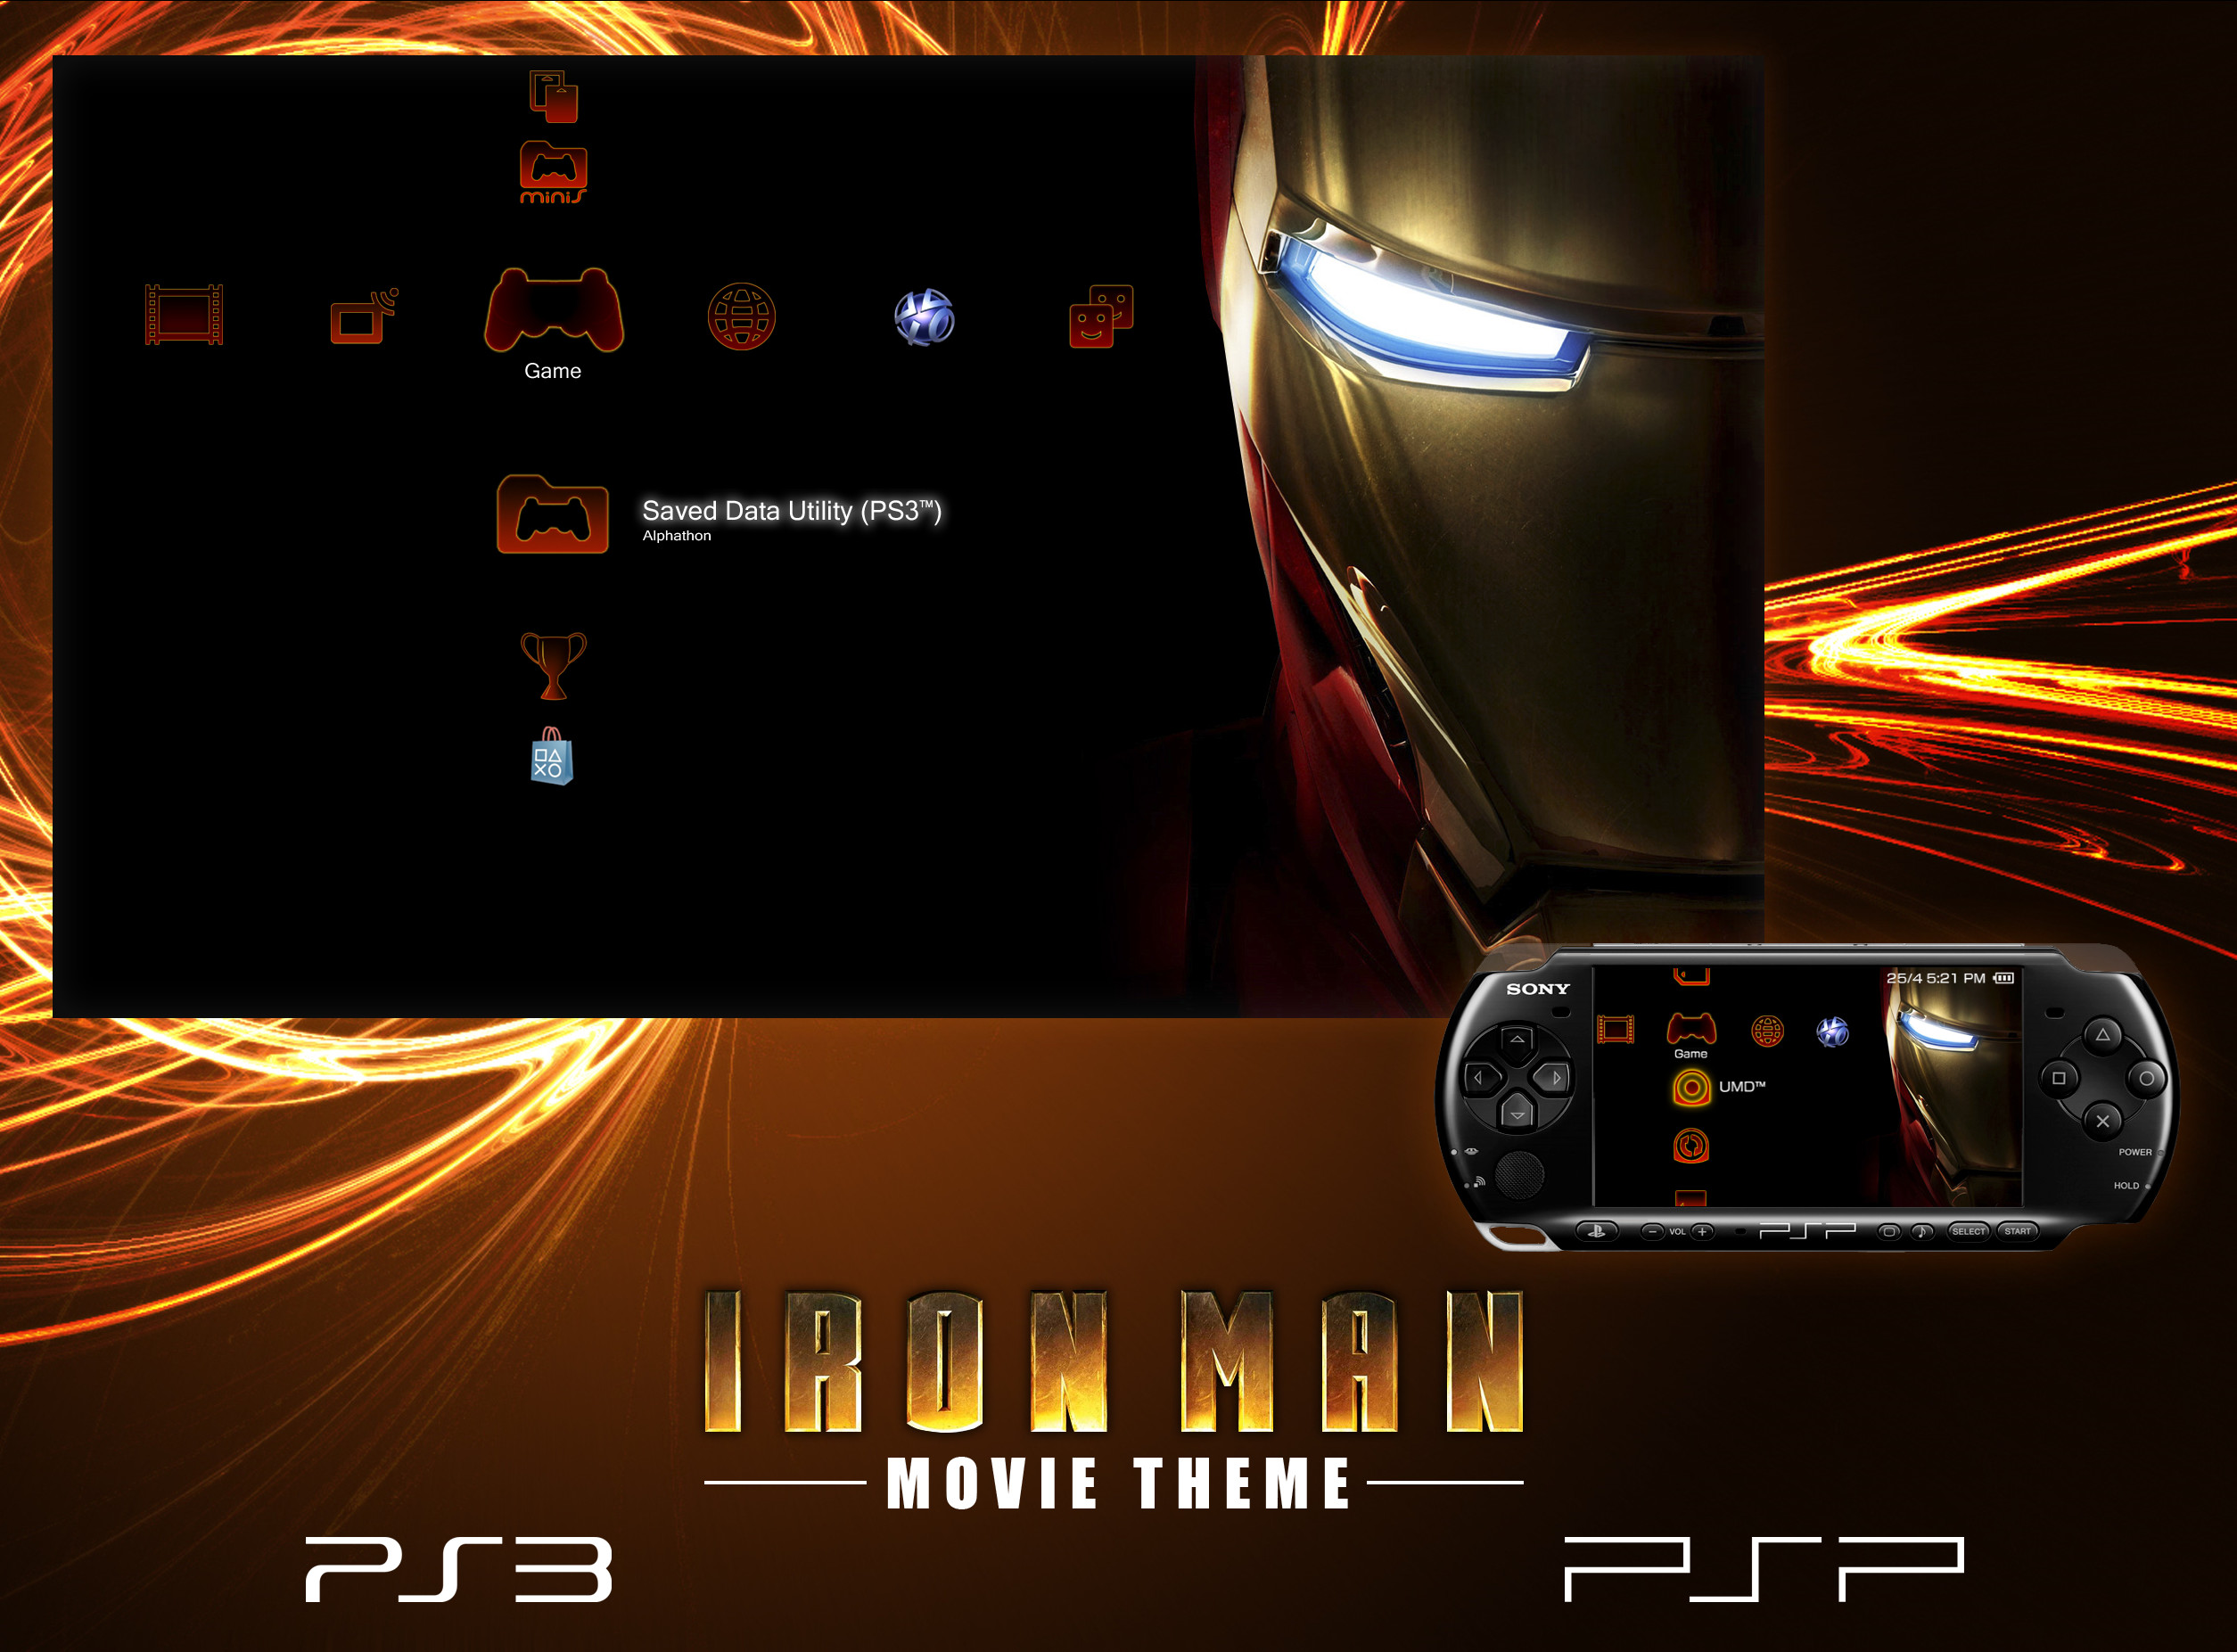 Psp Wallpapers And Themes Free Download Cool PS3 Wallpapers (7...